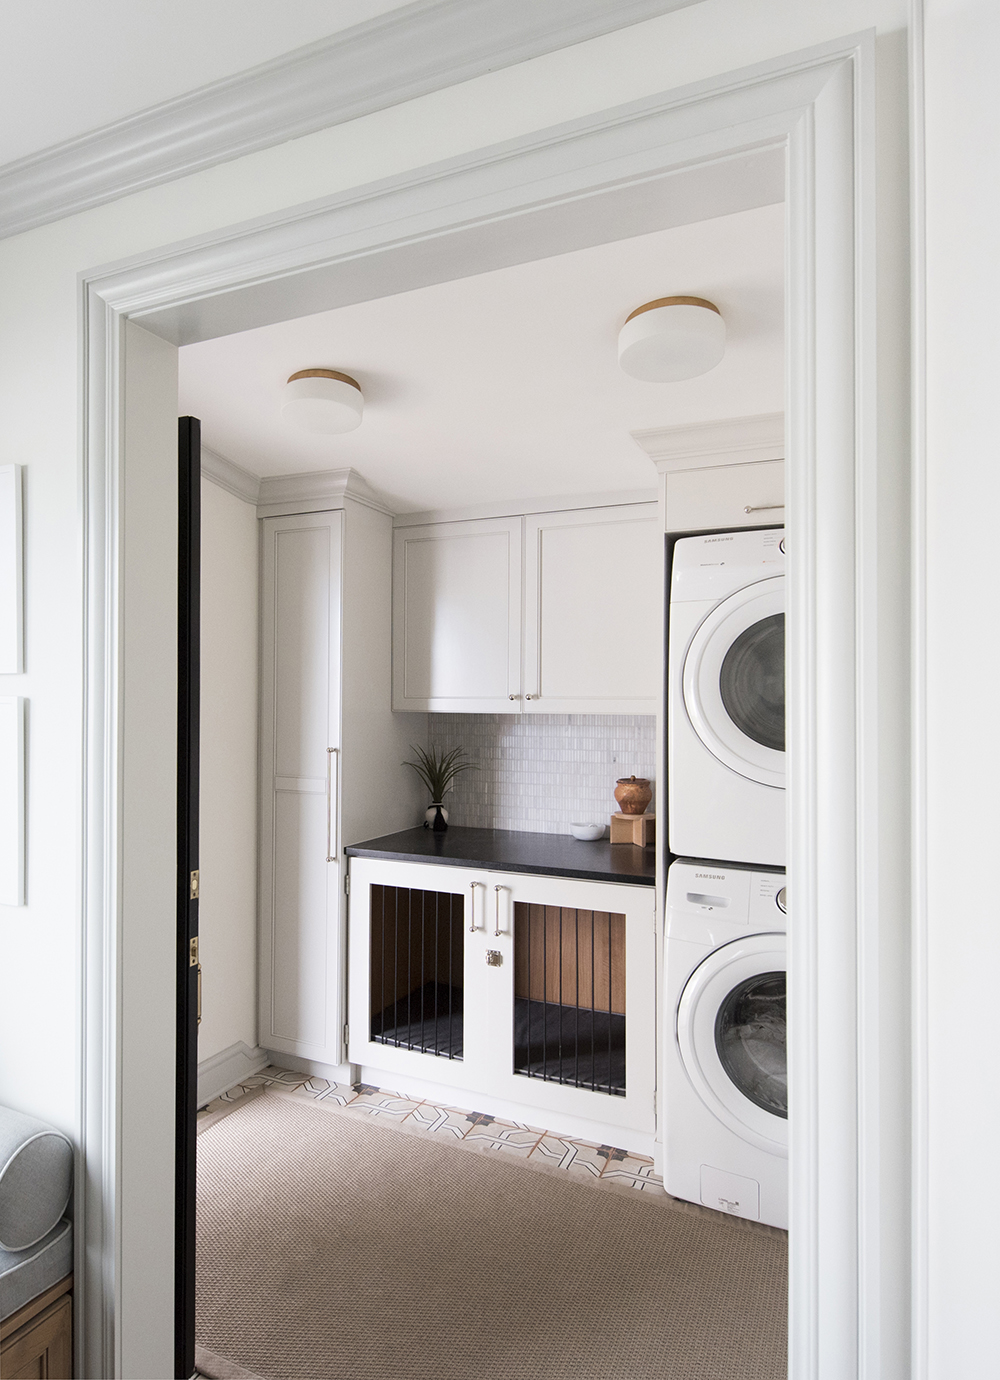 Laundry Room with Built-in Dog Kennel - roomfortuesday.com